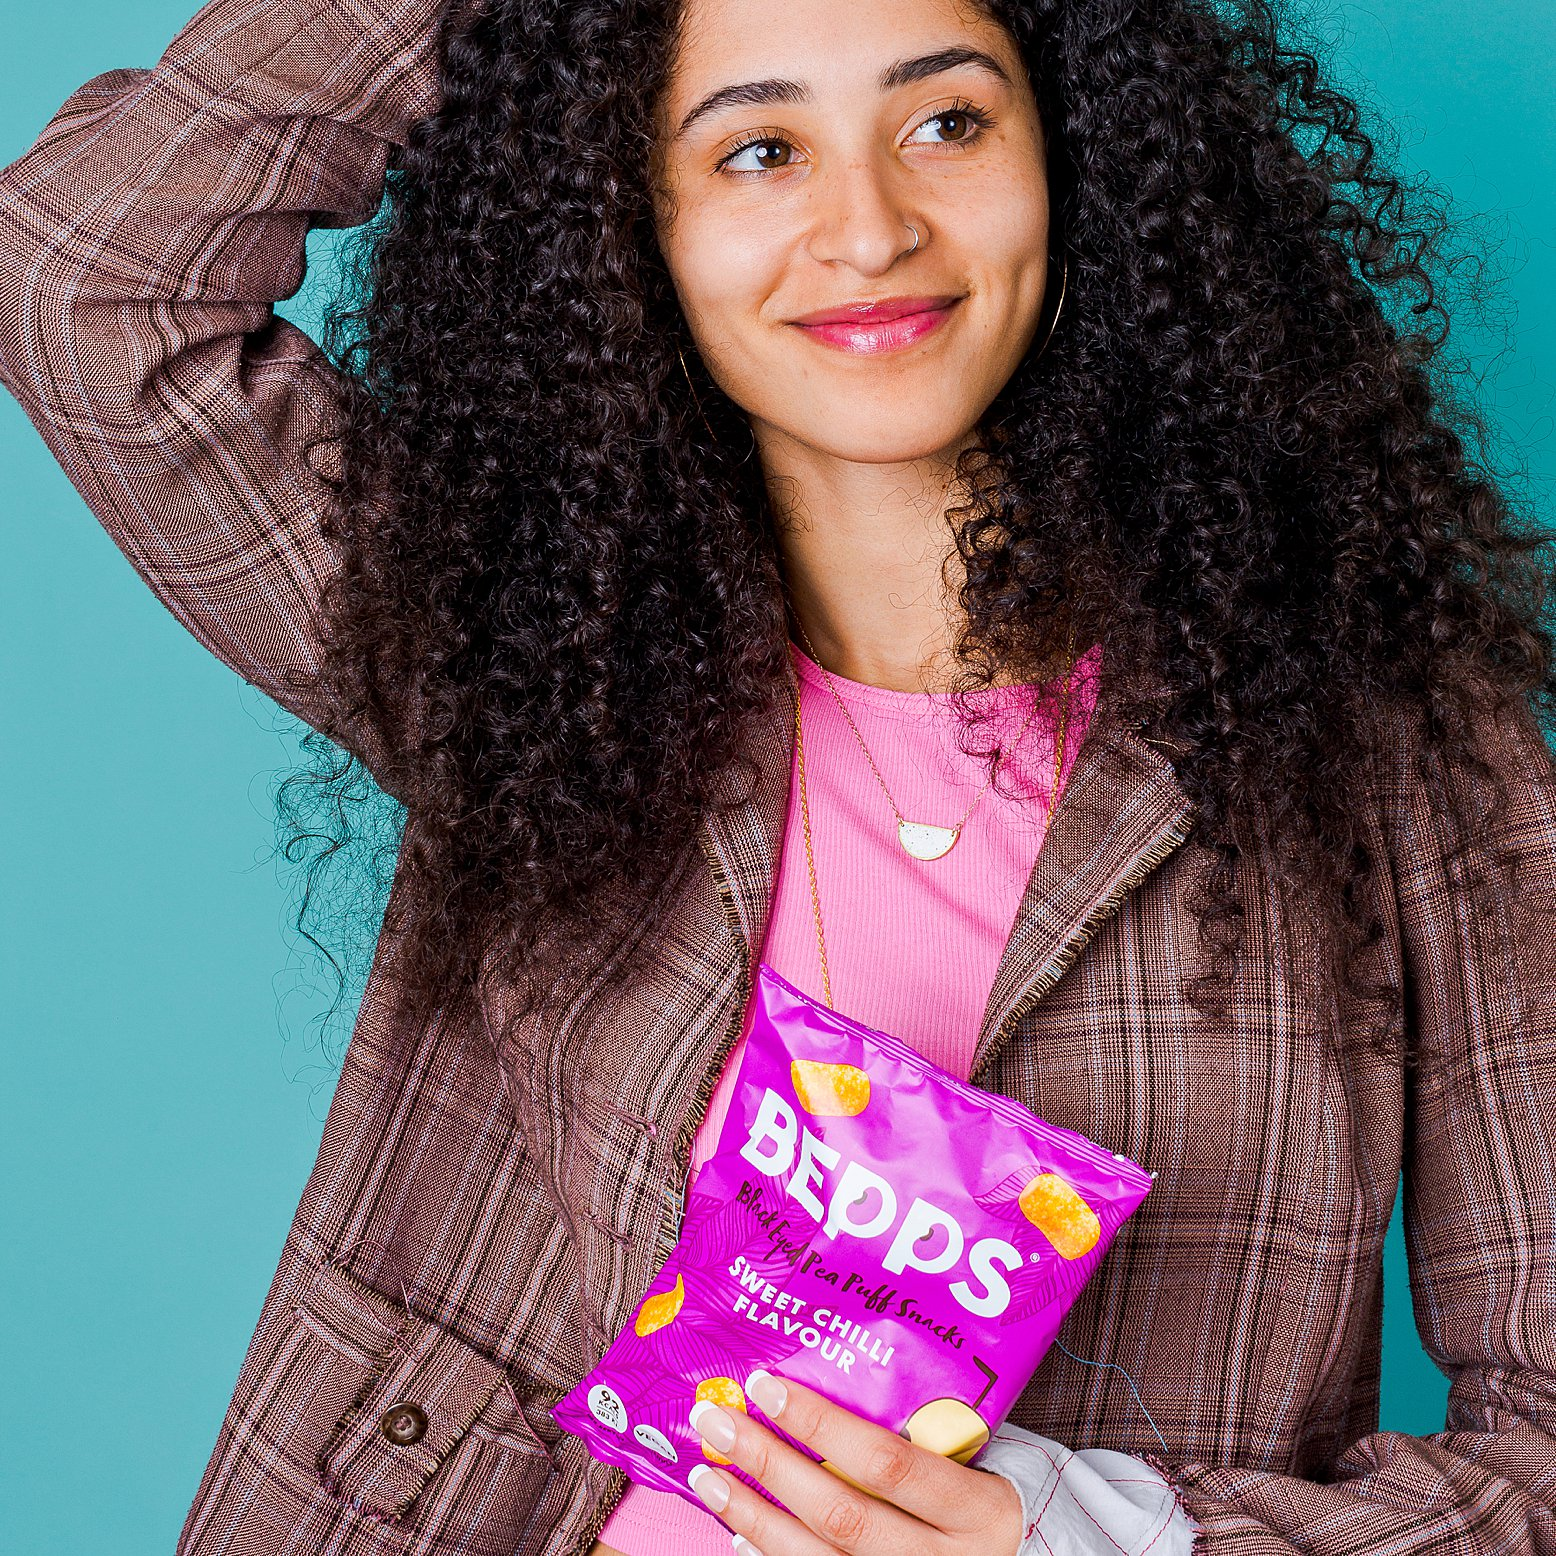 Product and lifestyle photography & content creation for Bepps Snacks. Product photography & styling by Marianne Taylor.